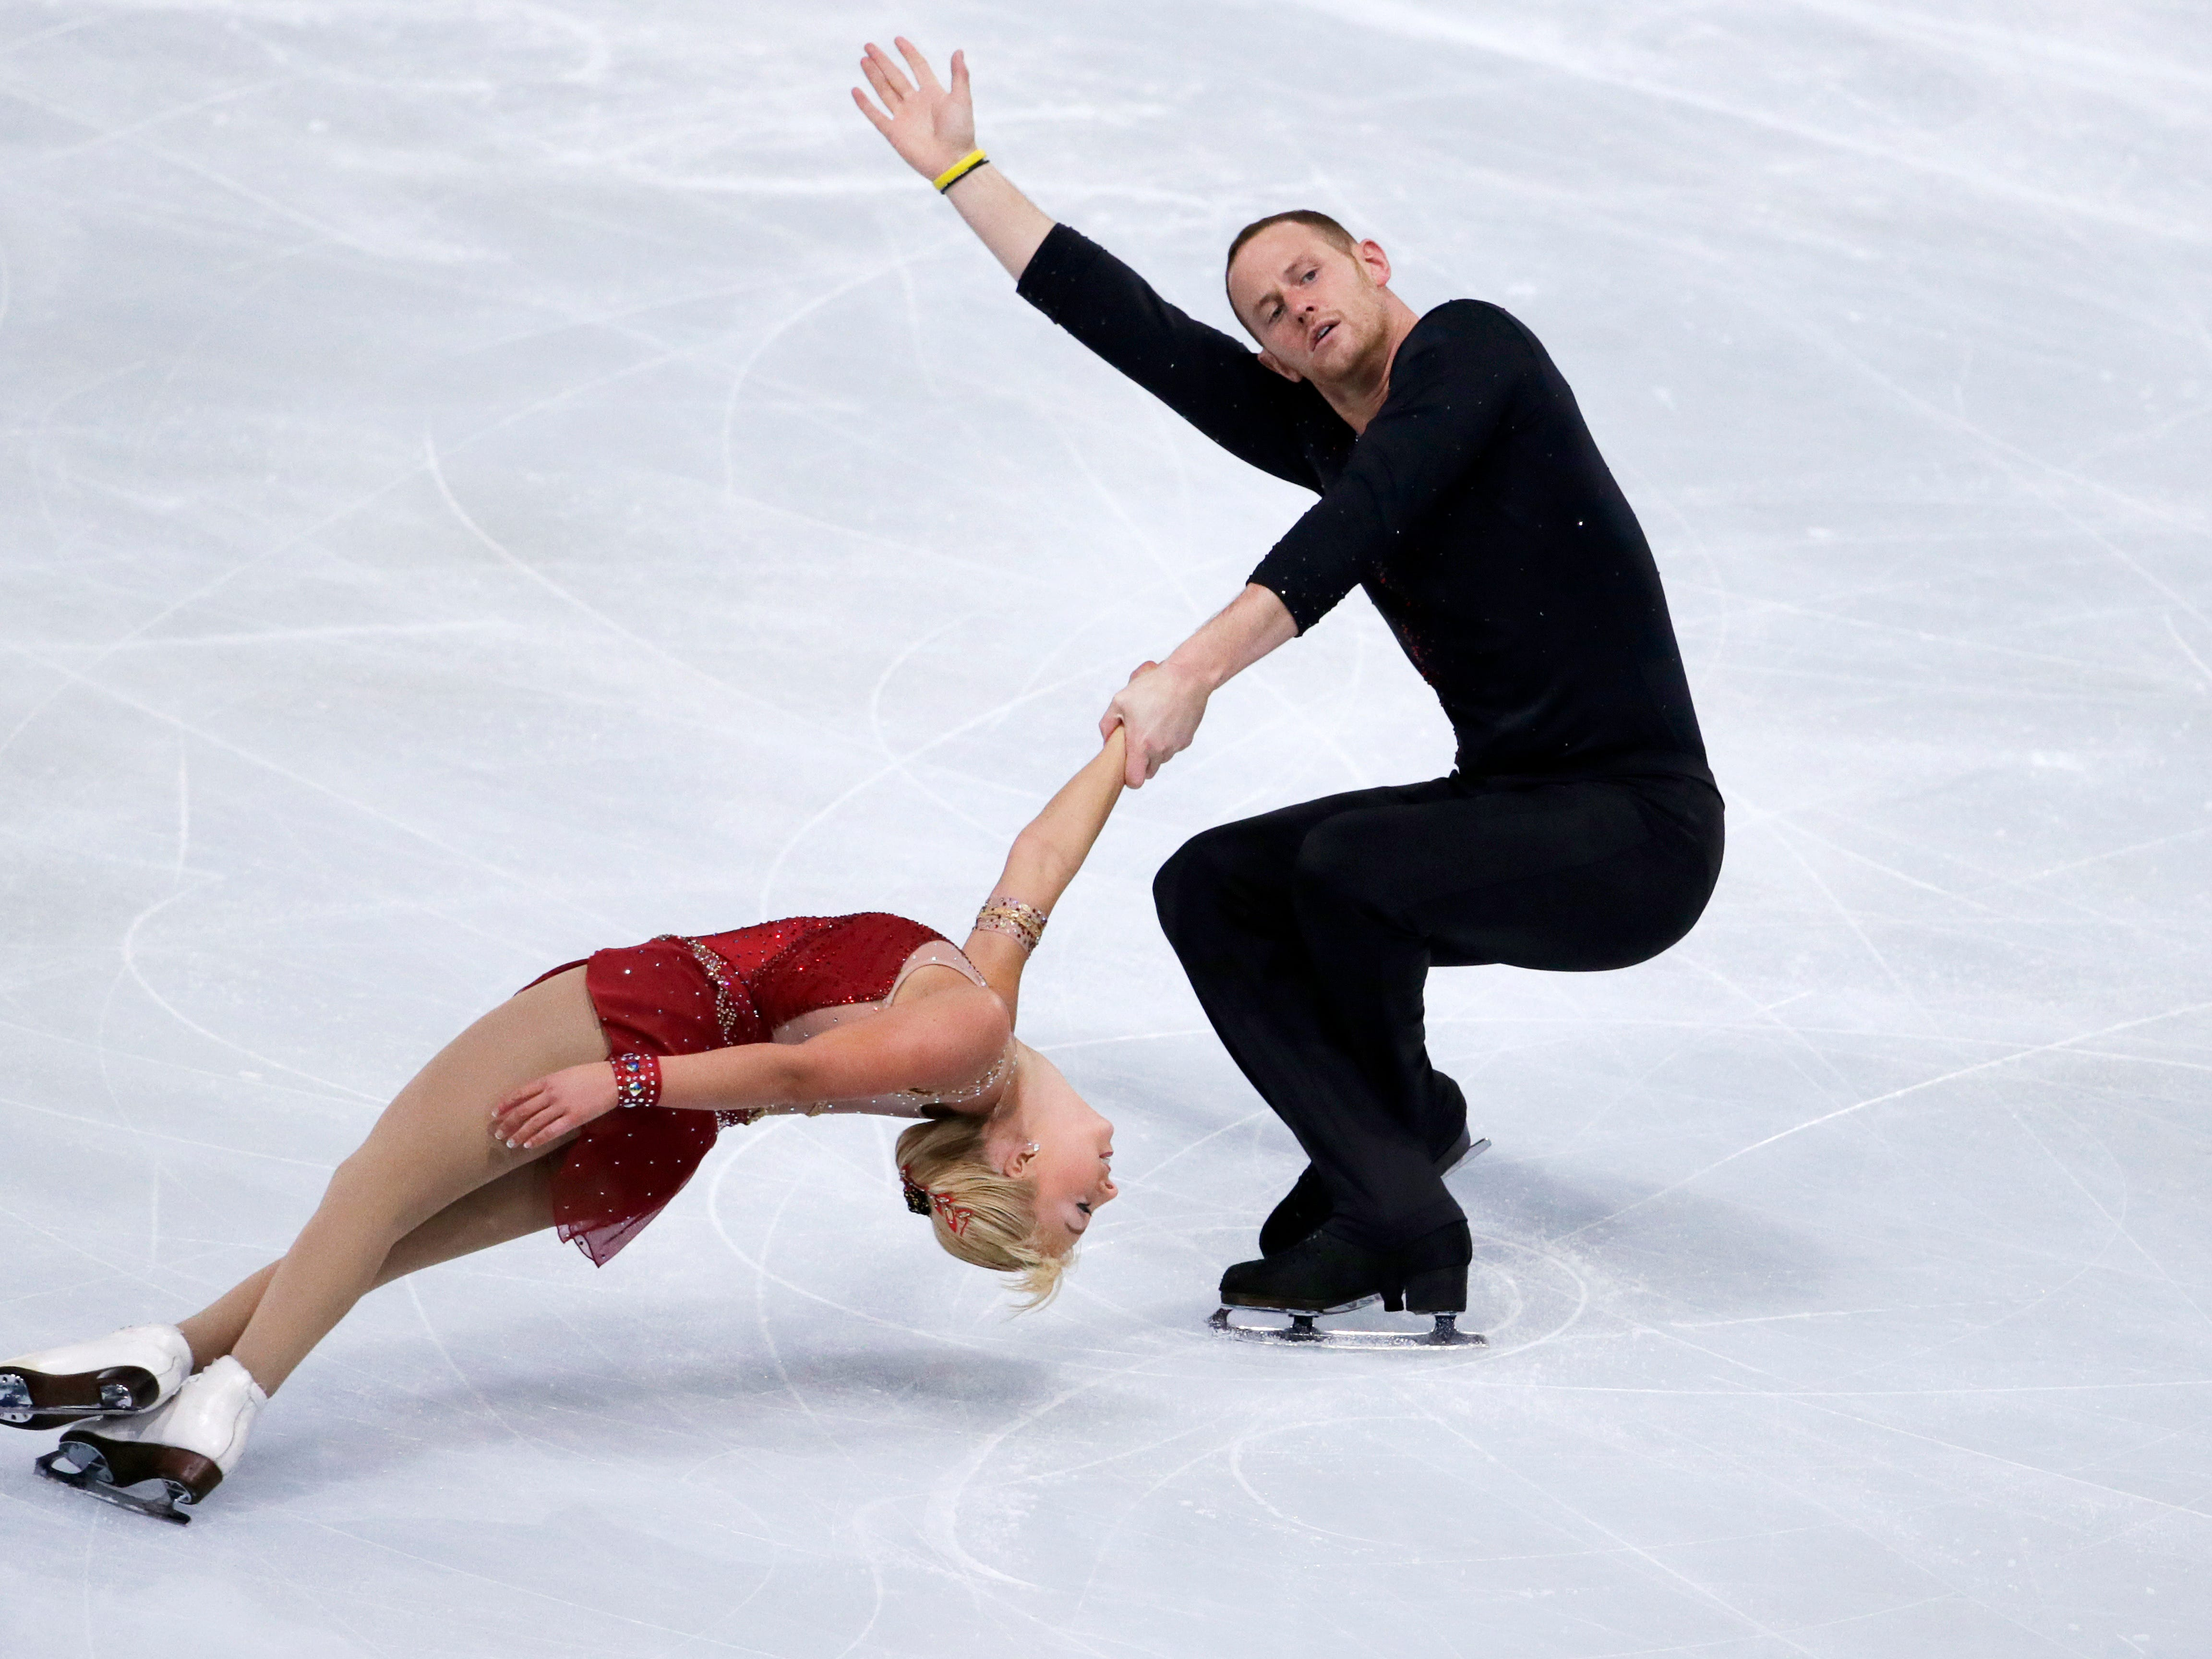 John Coughlin, United States figure skater, of suicide. Jan. 18. He was 33.